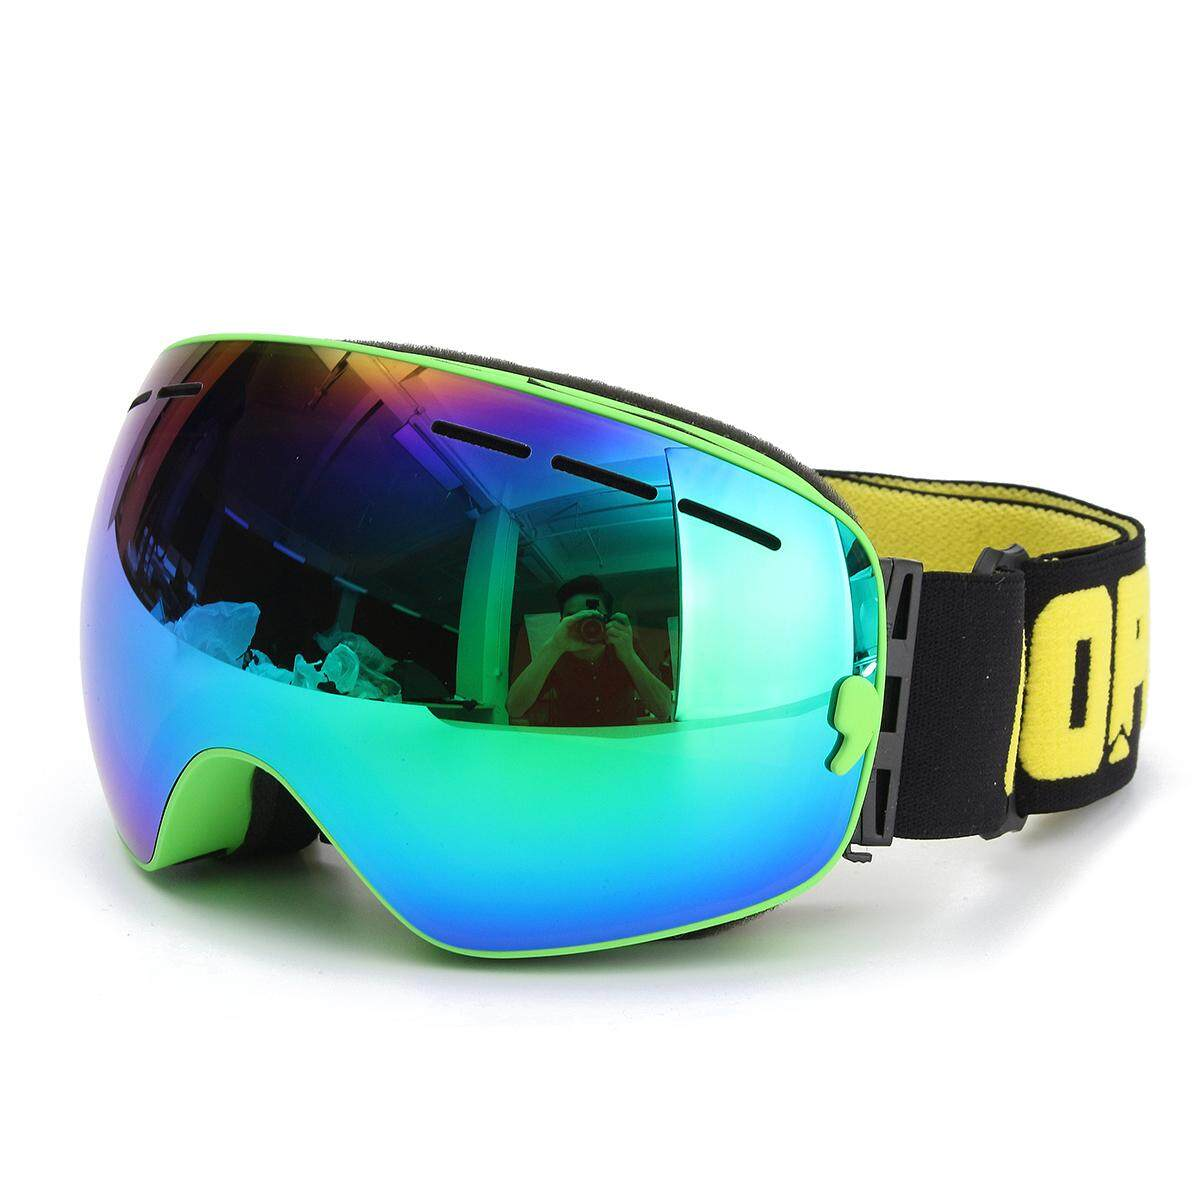 COPOZZ UV400 Spherical Dual-layer Lens Snowboard Glasses Anti-fog Skiing Goggles #Green - intl